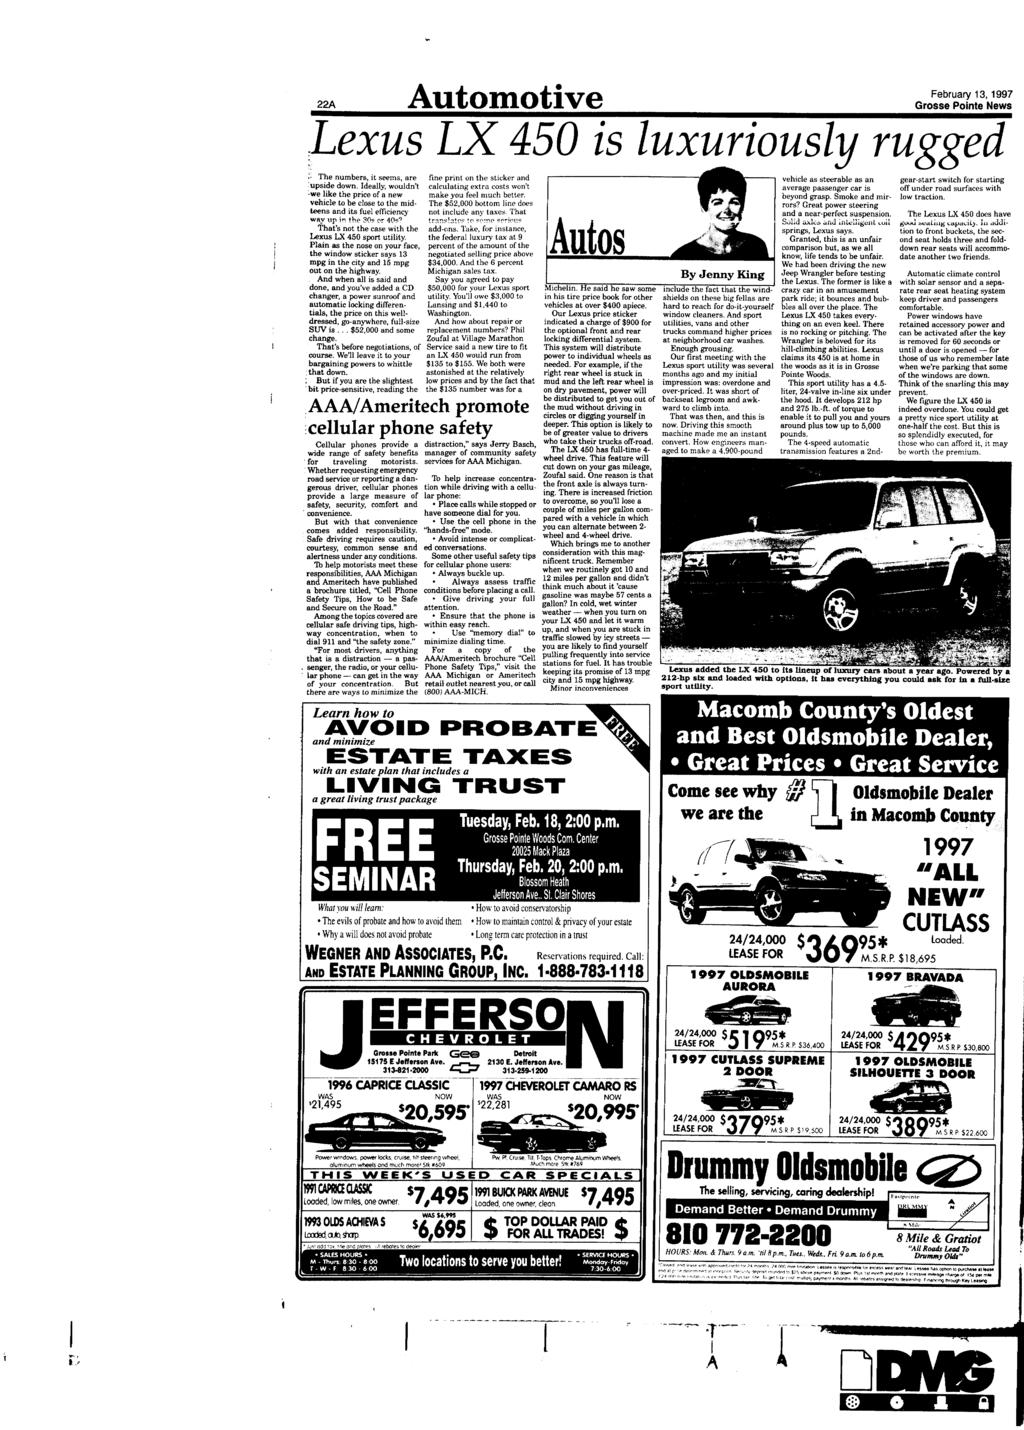 Lake St Clair Water Level Rising By Jim Stlckford Lilffwflter Piston Master Rem Honda Accord 90 93 At Mt Automotive 22a Lexus Lx 450 Is Luxuriously February 13 1997 Grosse Pointe News Rugged